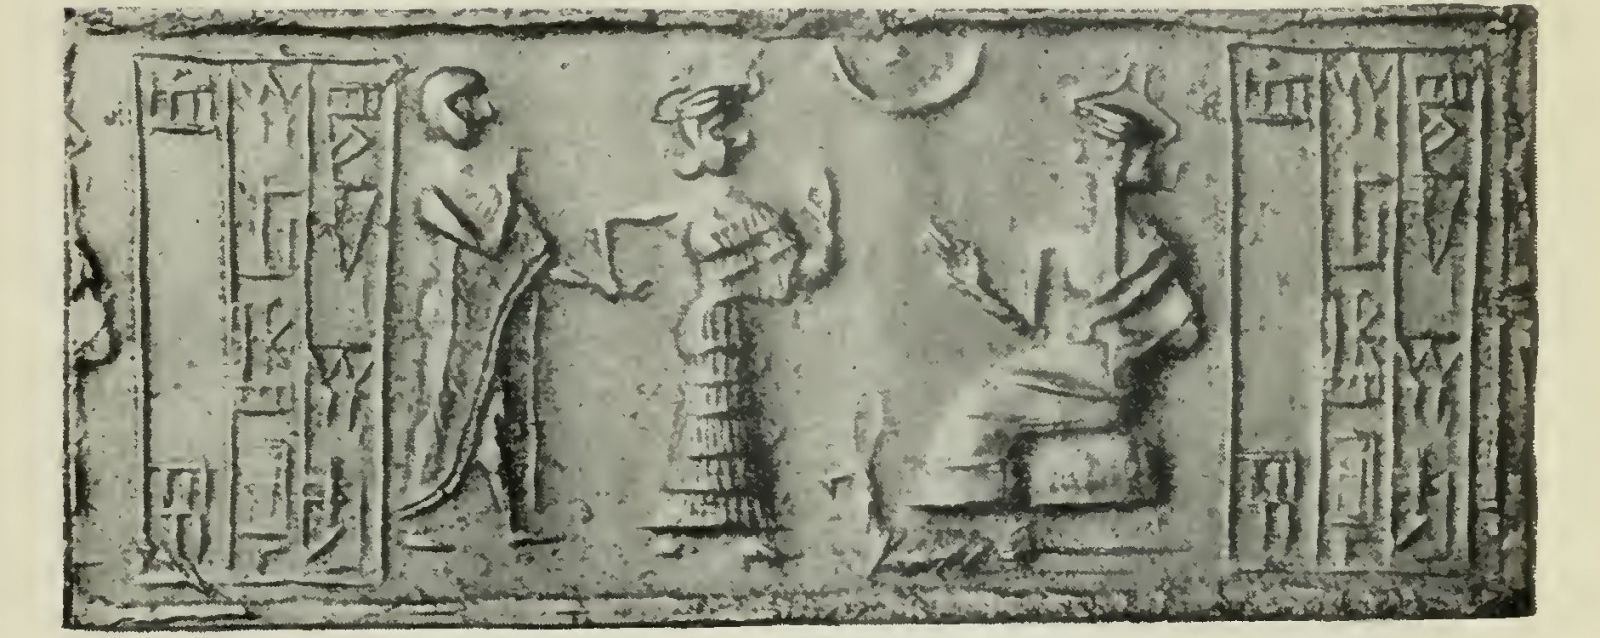 Fig. 2. Ea, the God of Water